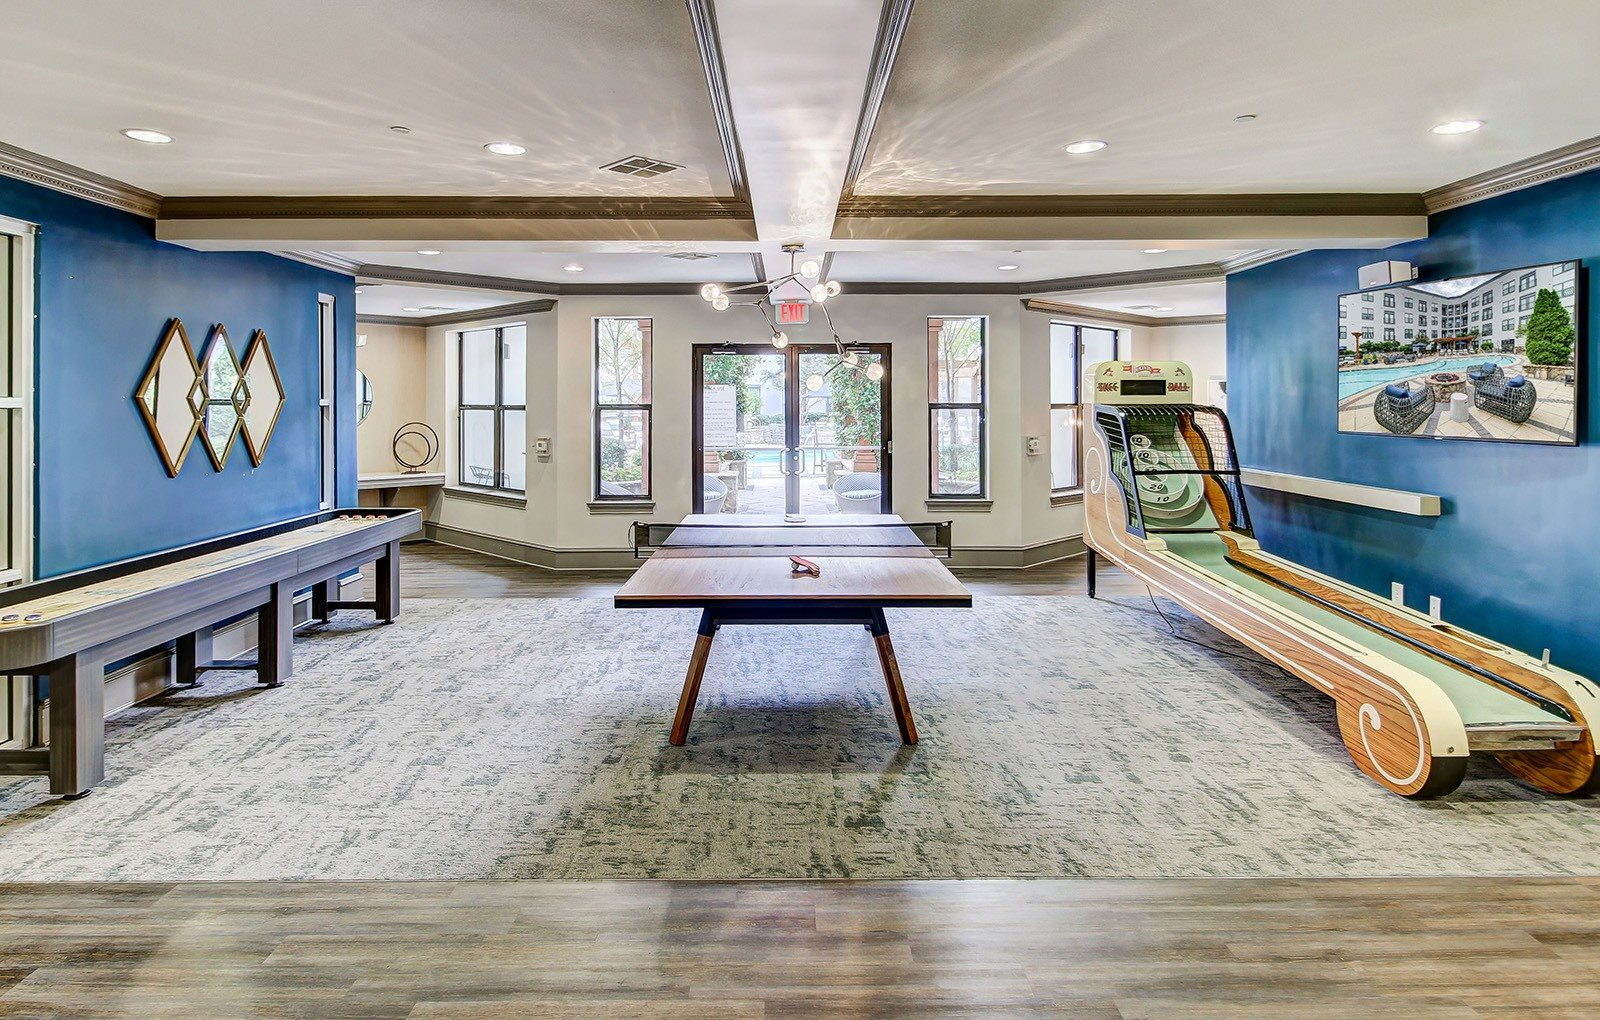 Game room with table games and modern furnishings